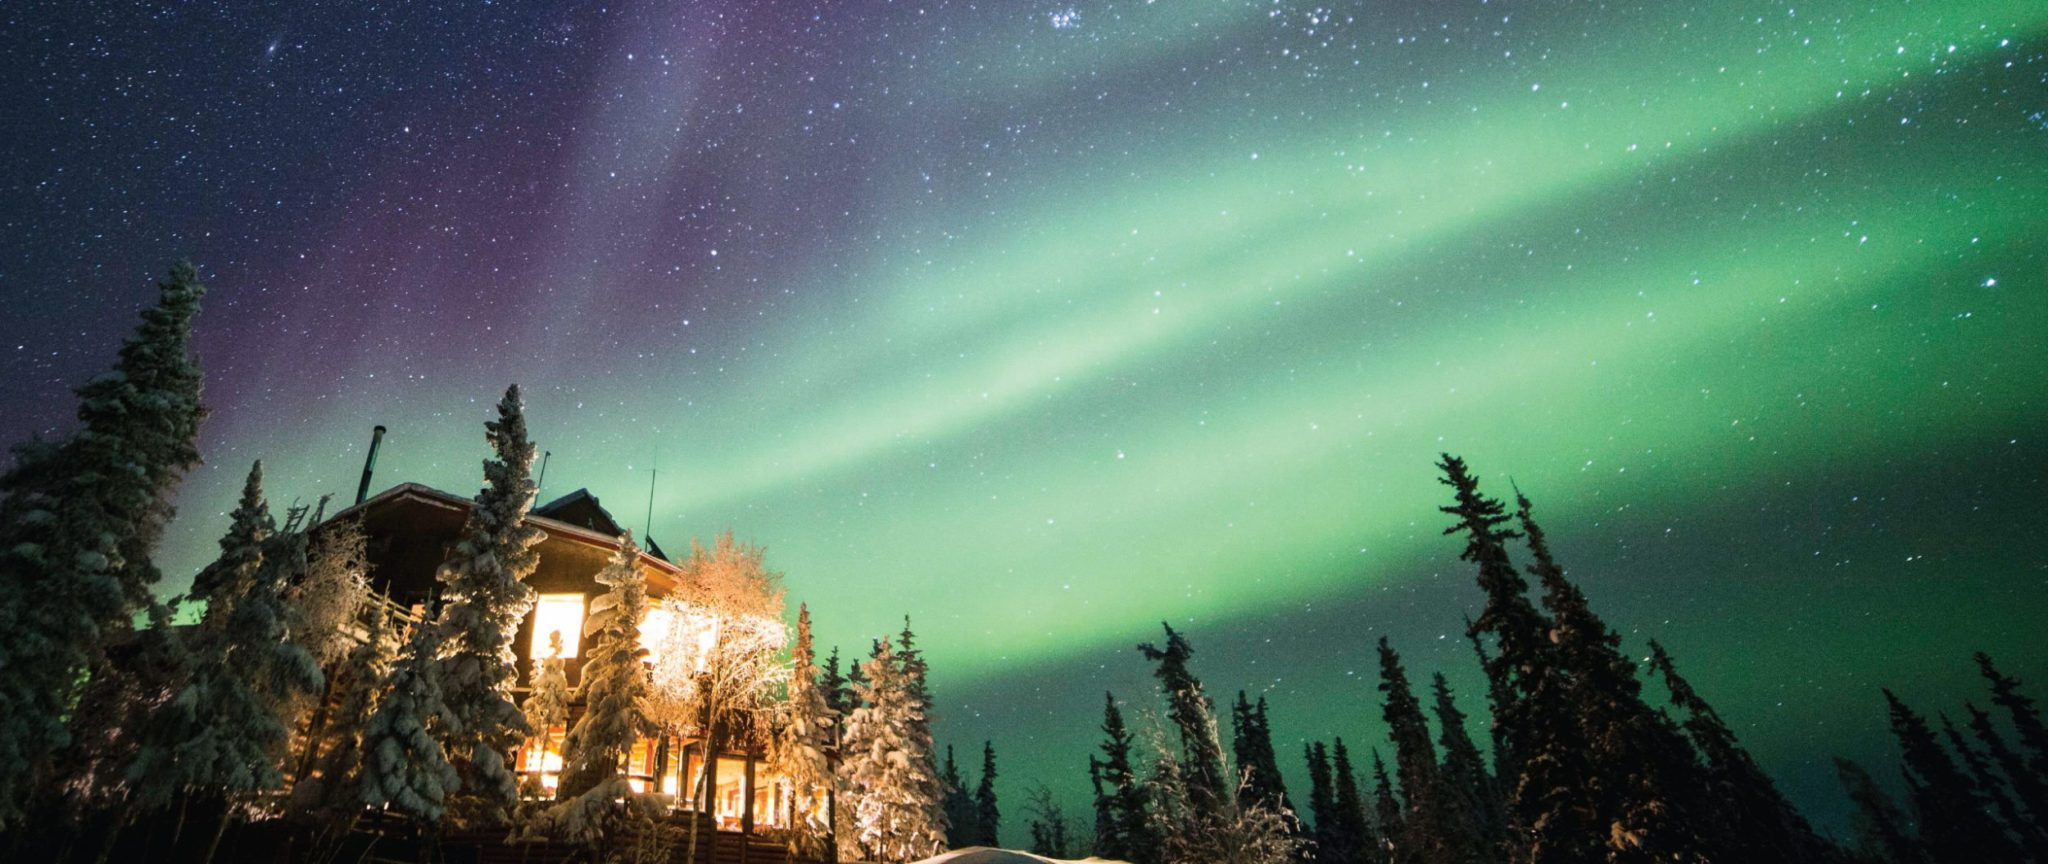 trips to see the northern lights